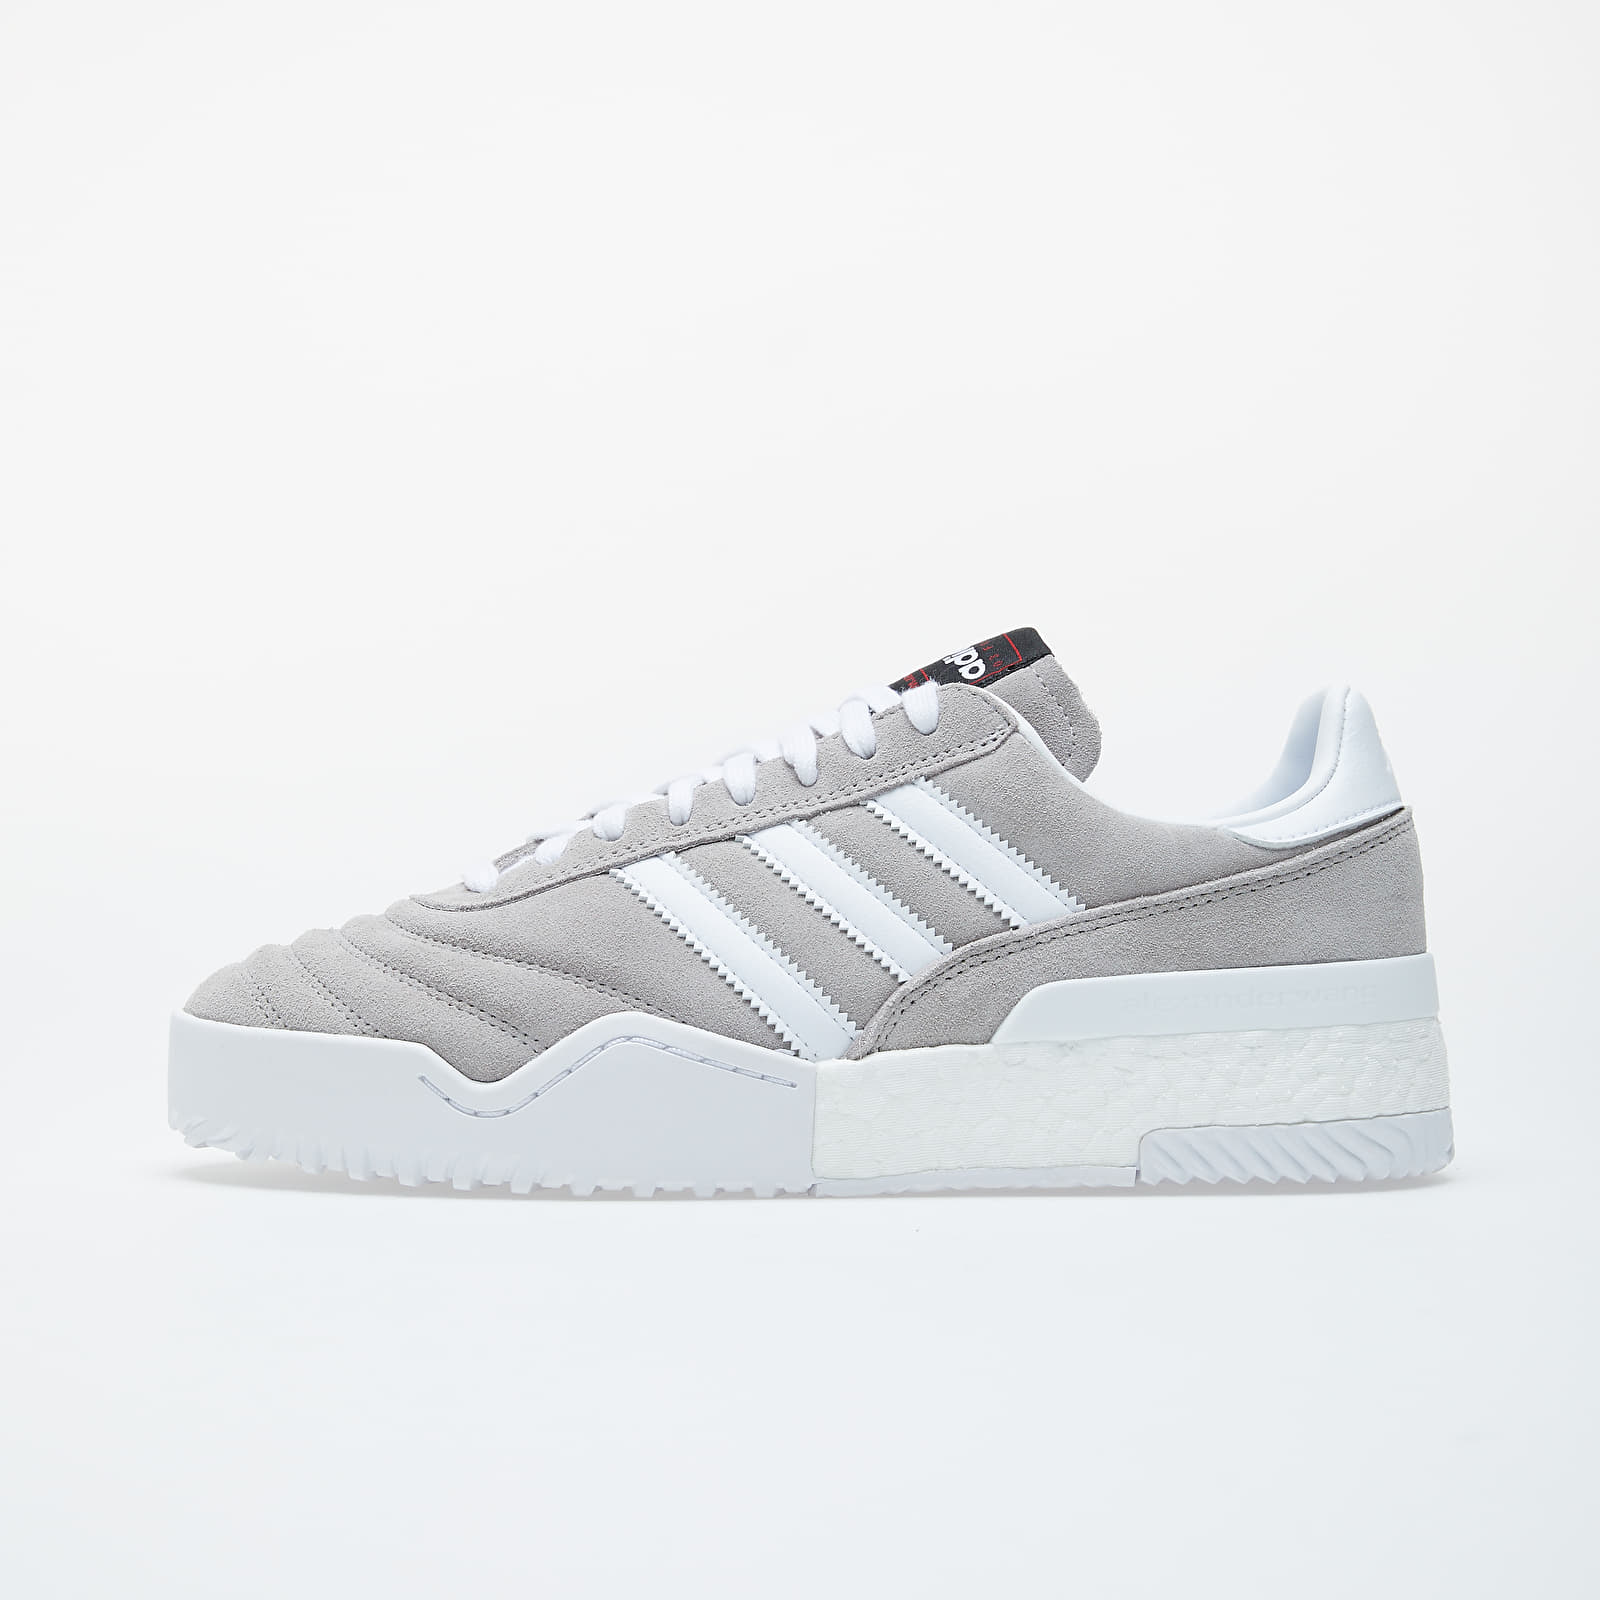 Men's shoes adidas x Alexander Wang Bball Soccer Clear Granite/ Clear Granite/ Core White